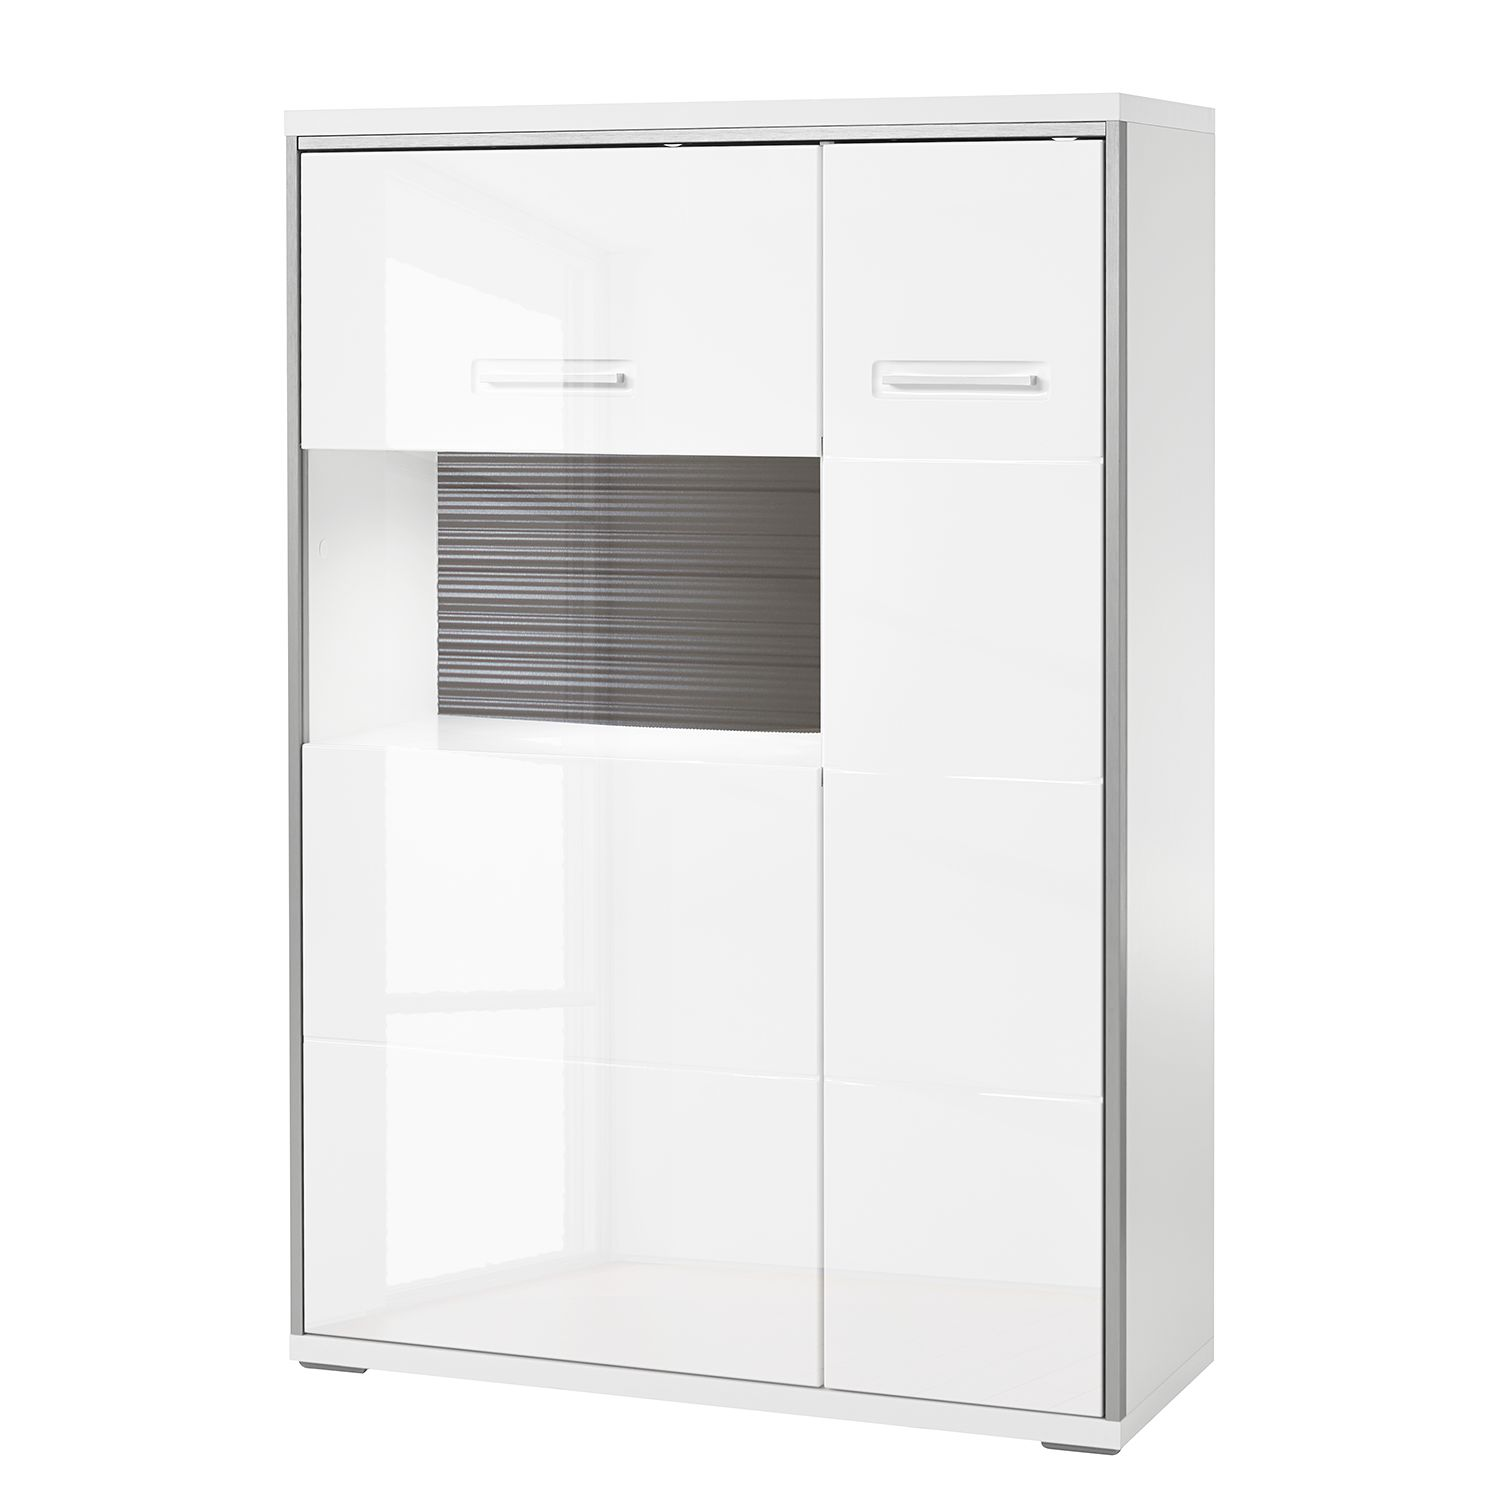 Highboard Kushiro II - Hochglanz Weiß / Grau - Glastür links, Modoform